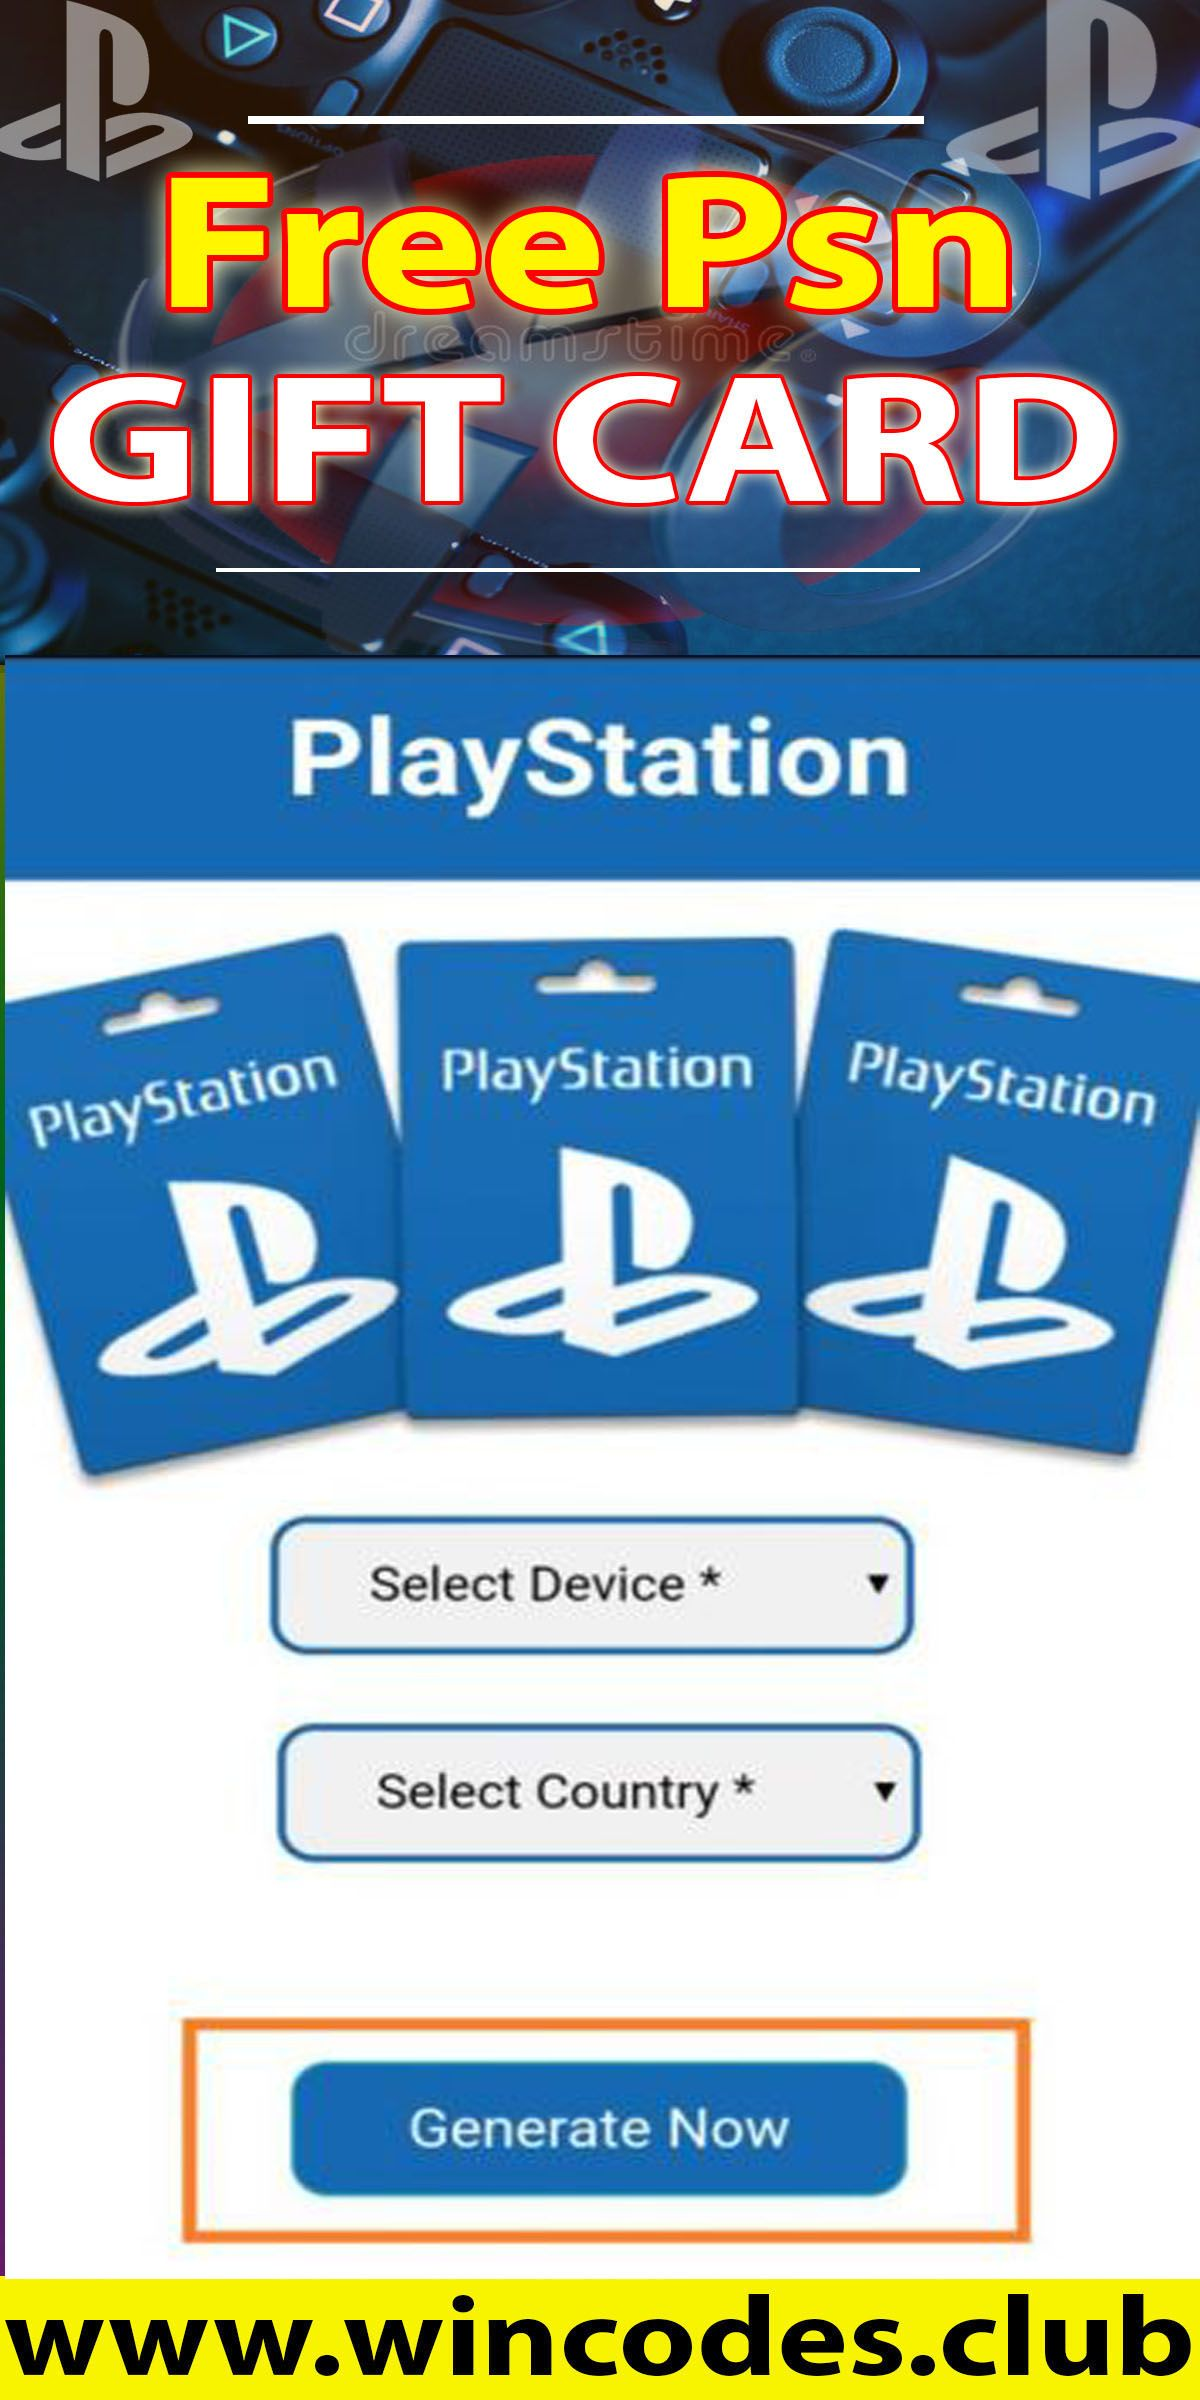 Free psn gift cards in 2020 free gift cards gift card